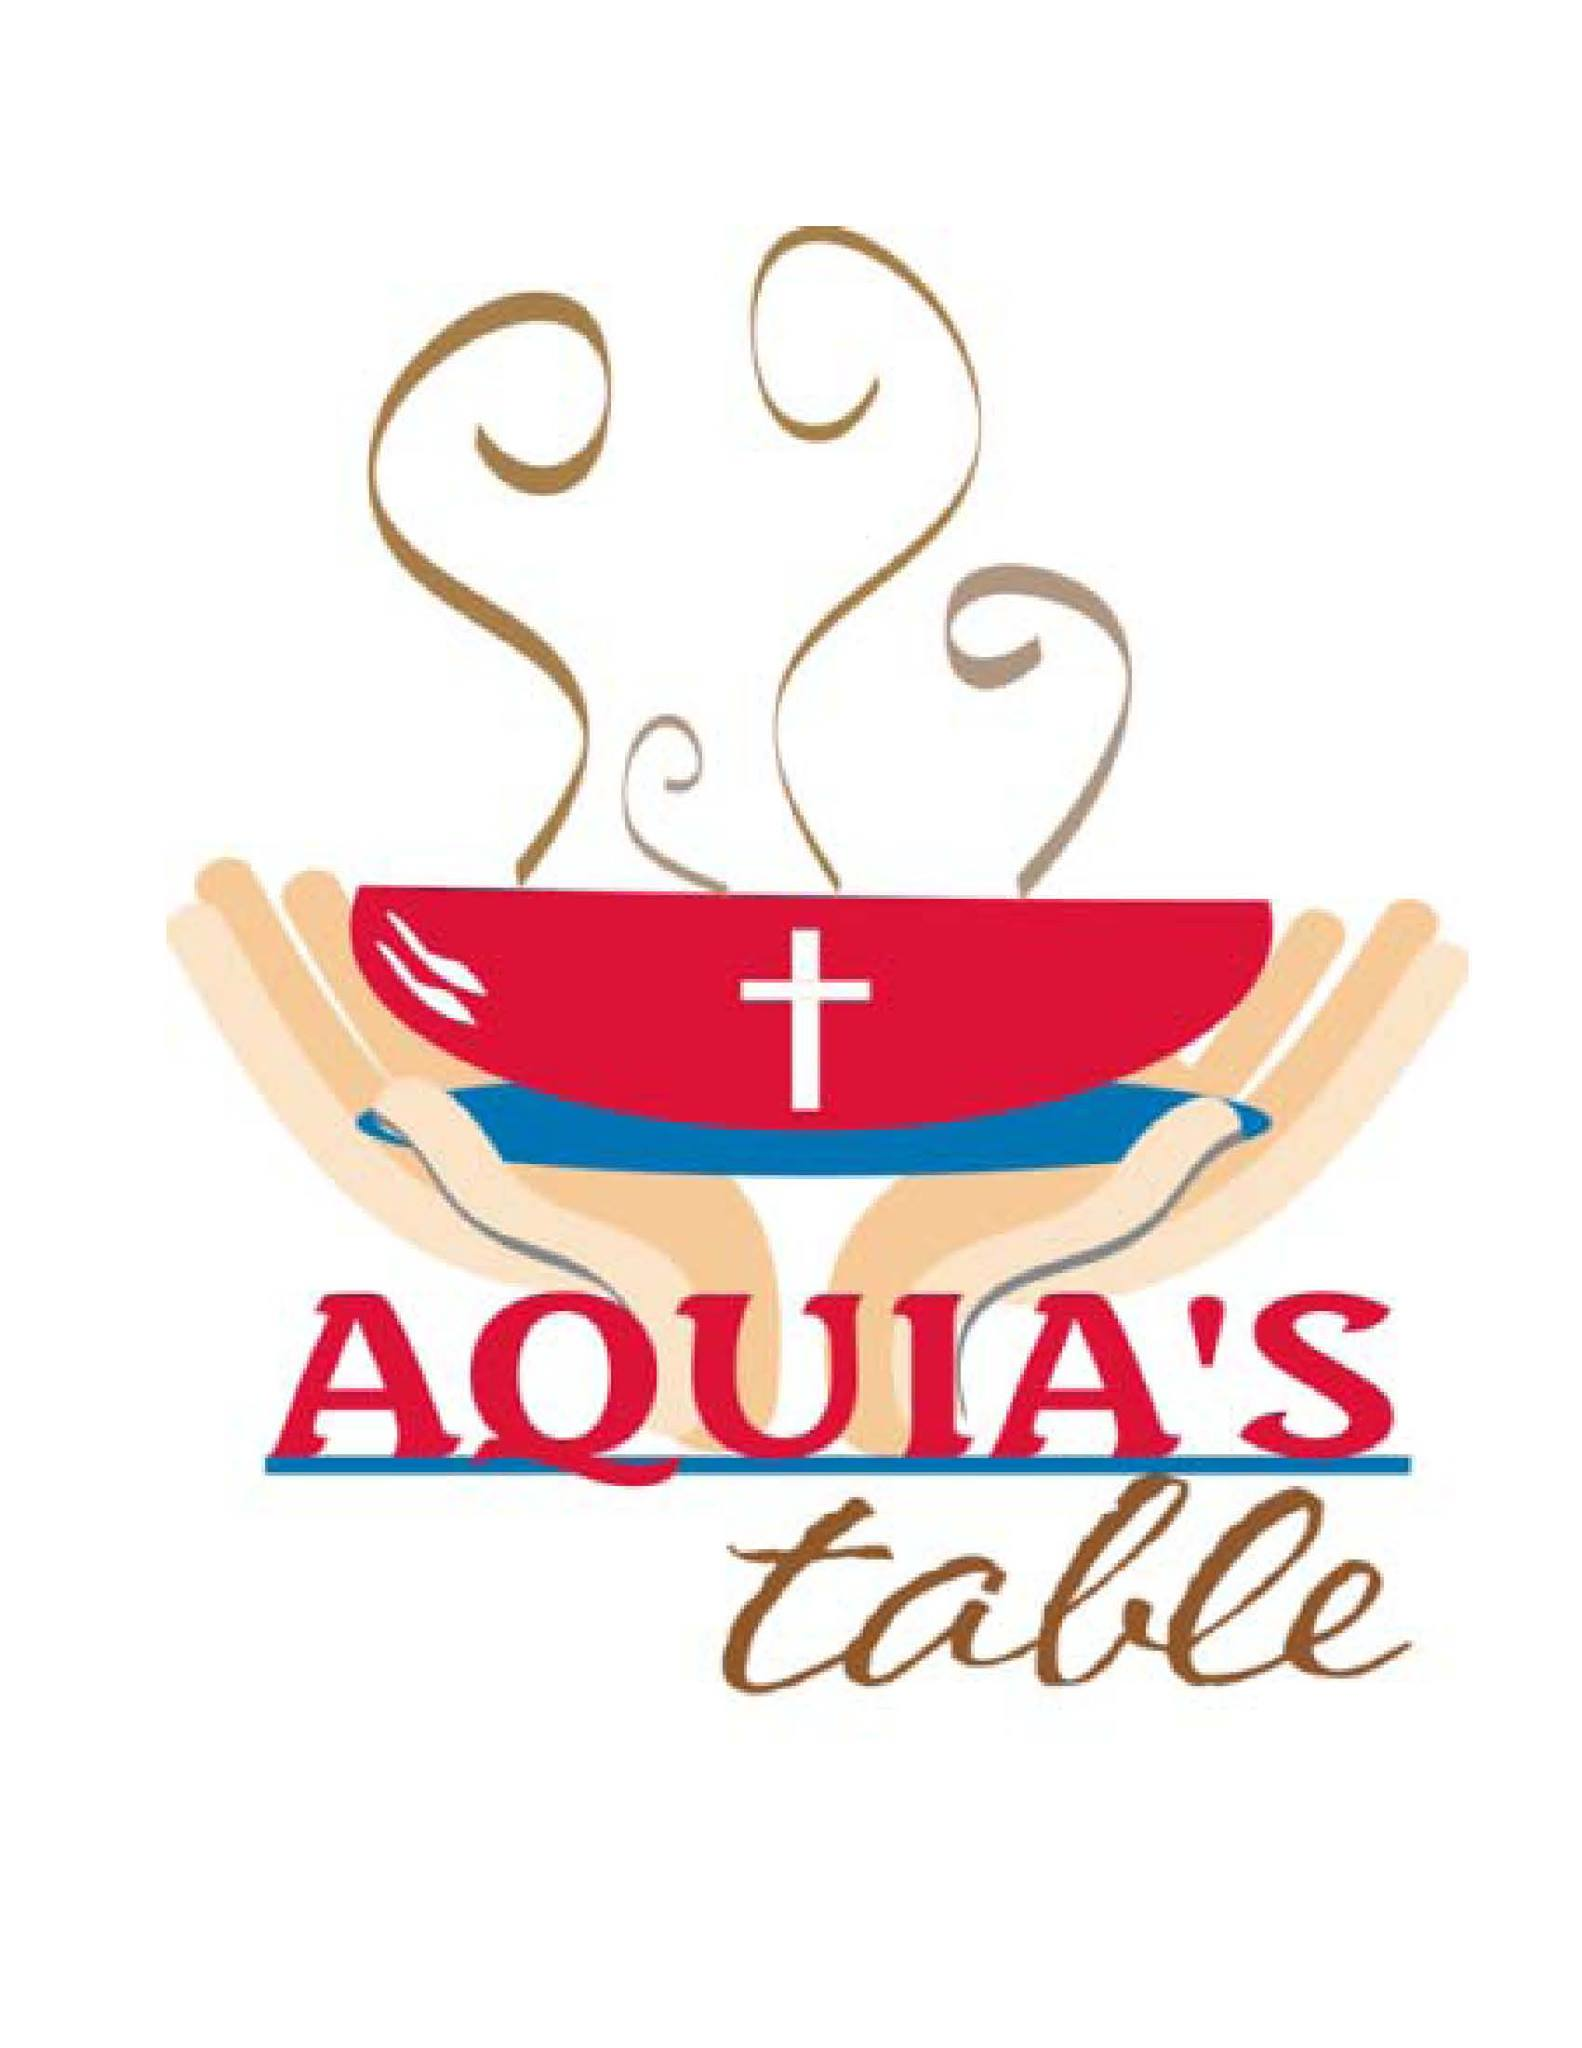 ACT is proud to support Aquia's Table